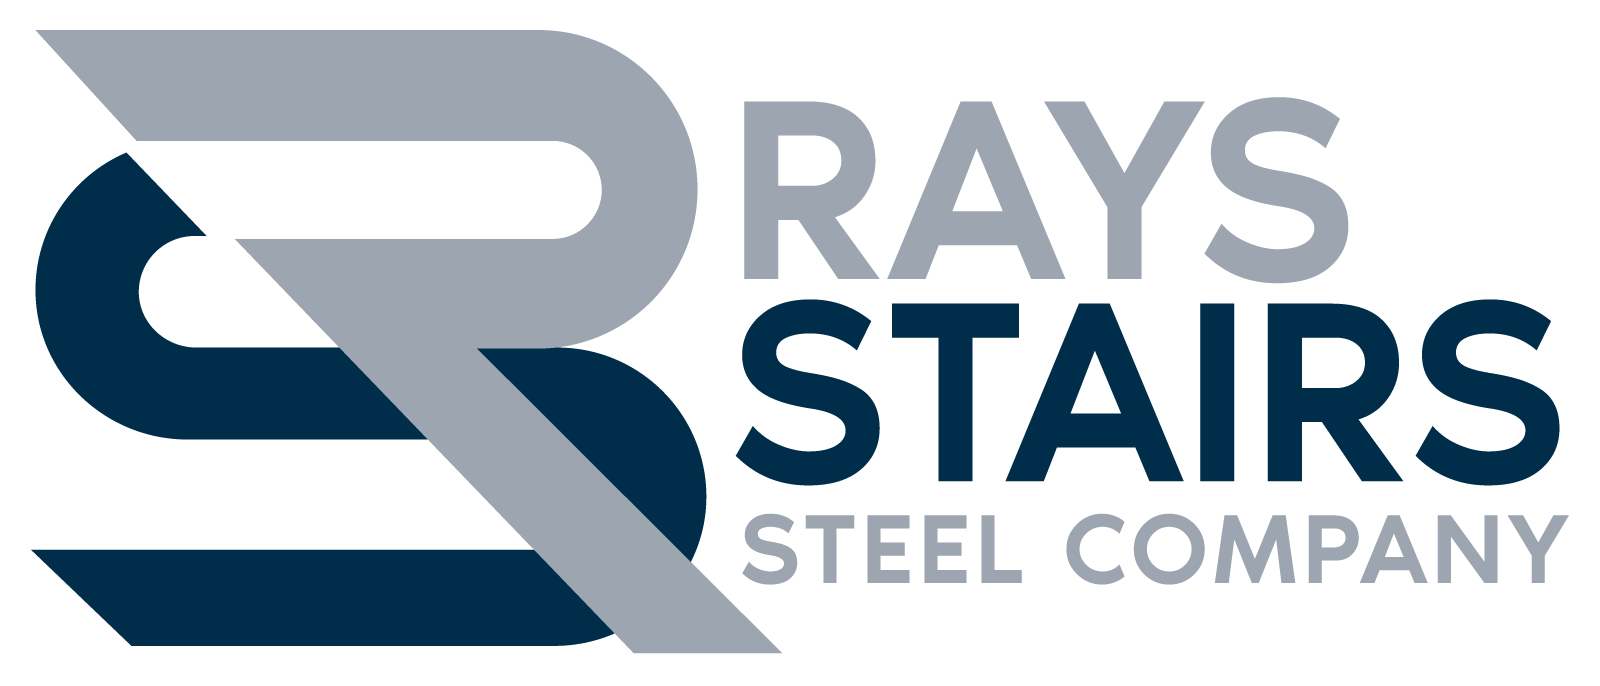 https://growthzonesitesprod.azureedge.net/wp-content/uploads/sites/1496/2020/03/RAYS-STAIRS-LOGO.png